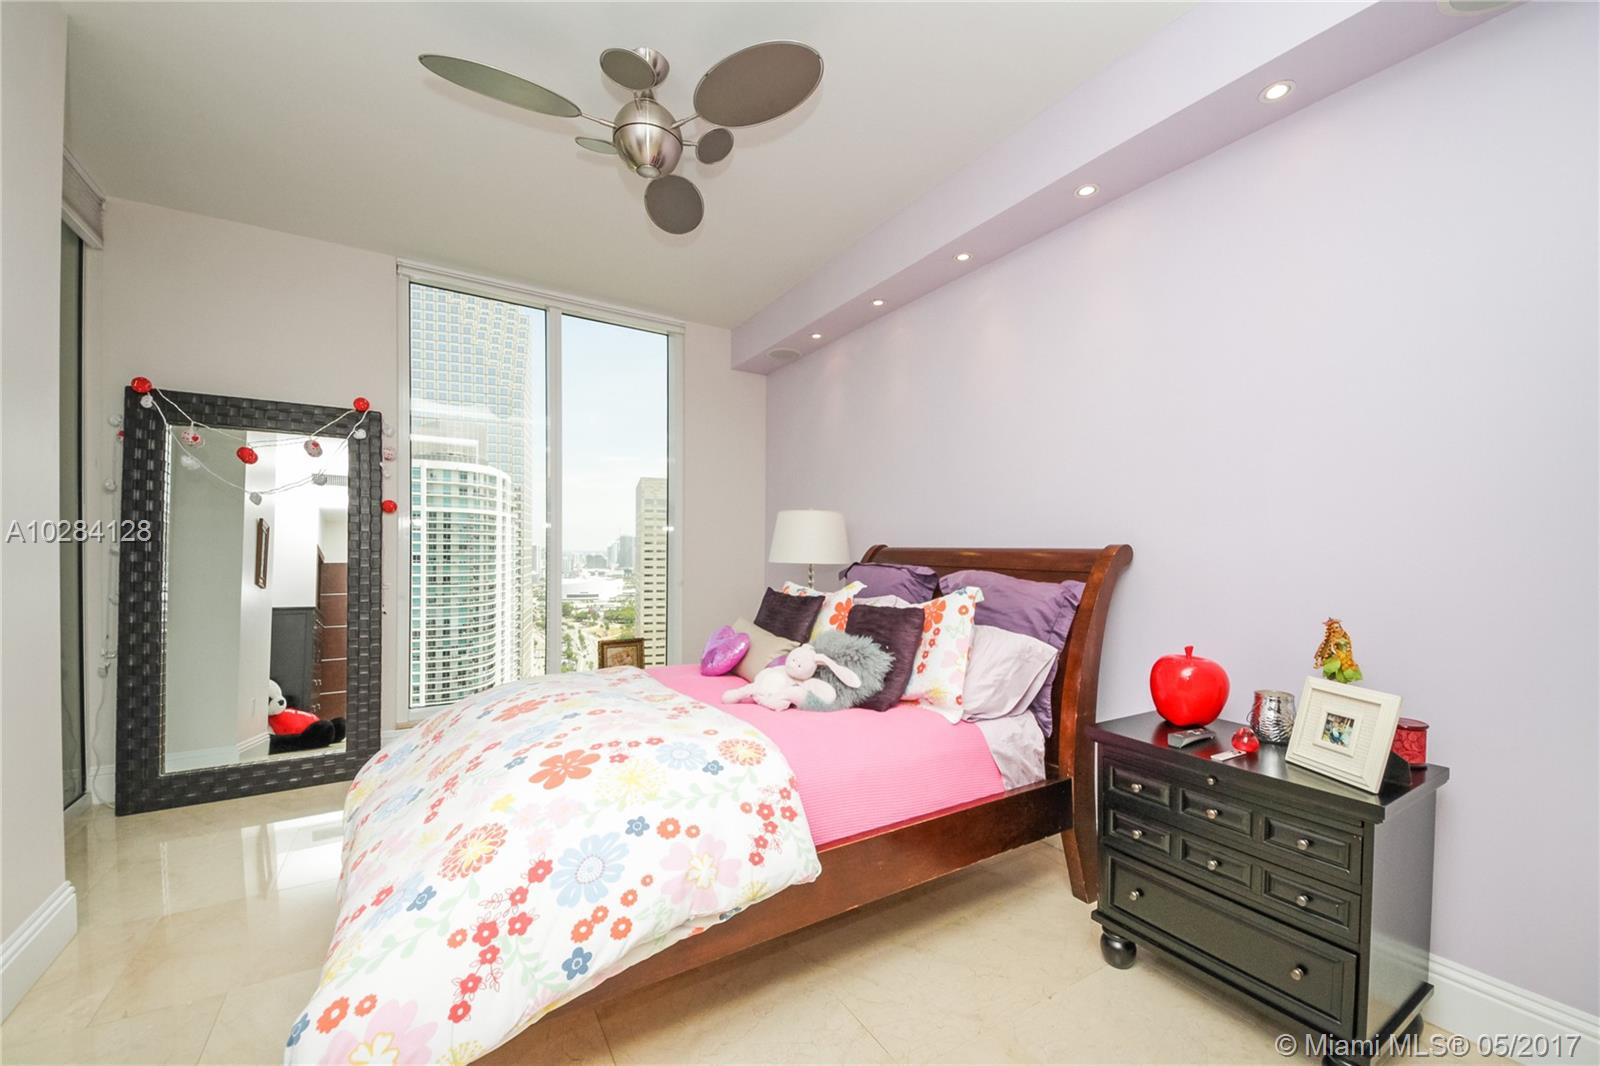 901 Brickell key blvd-PH3705 miami--fl-33131-a10284128-Pic23